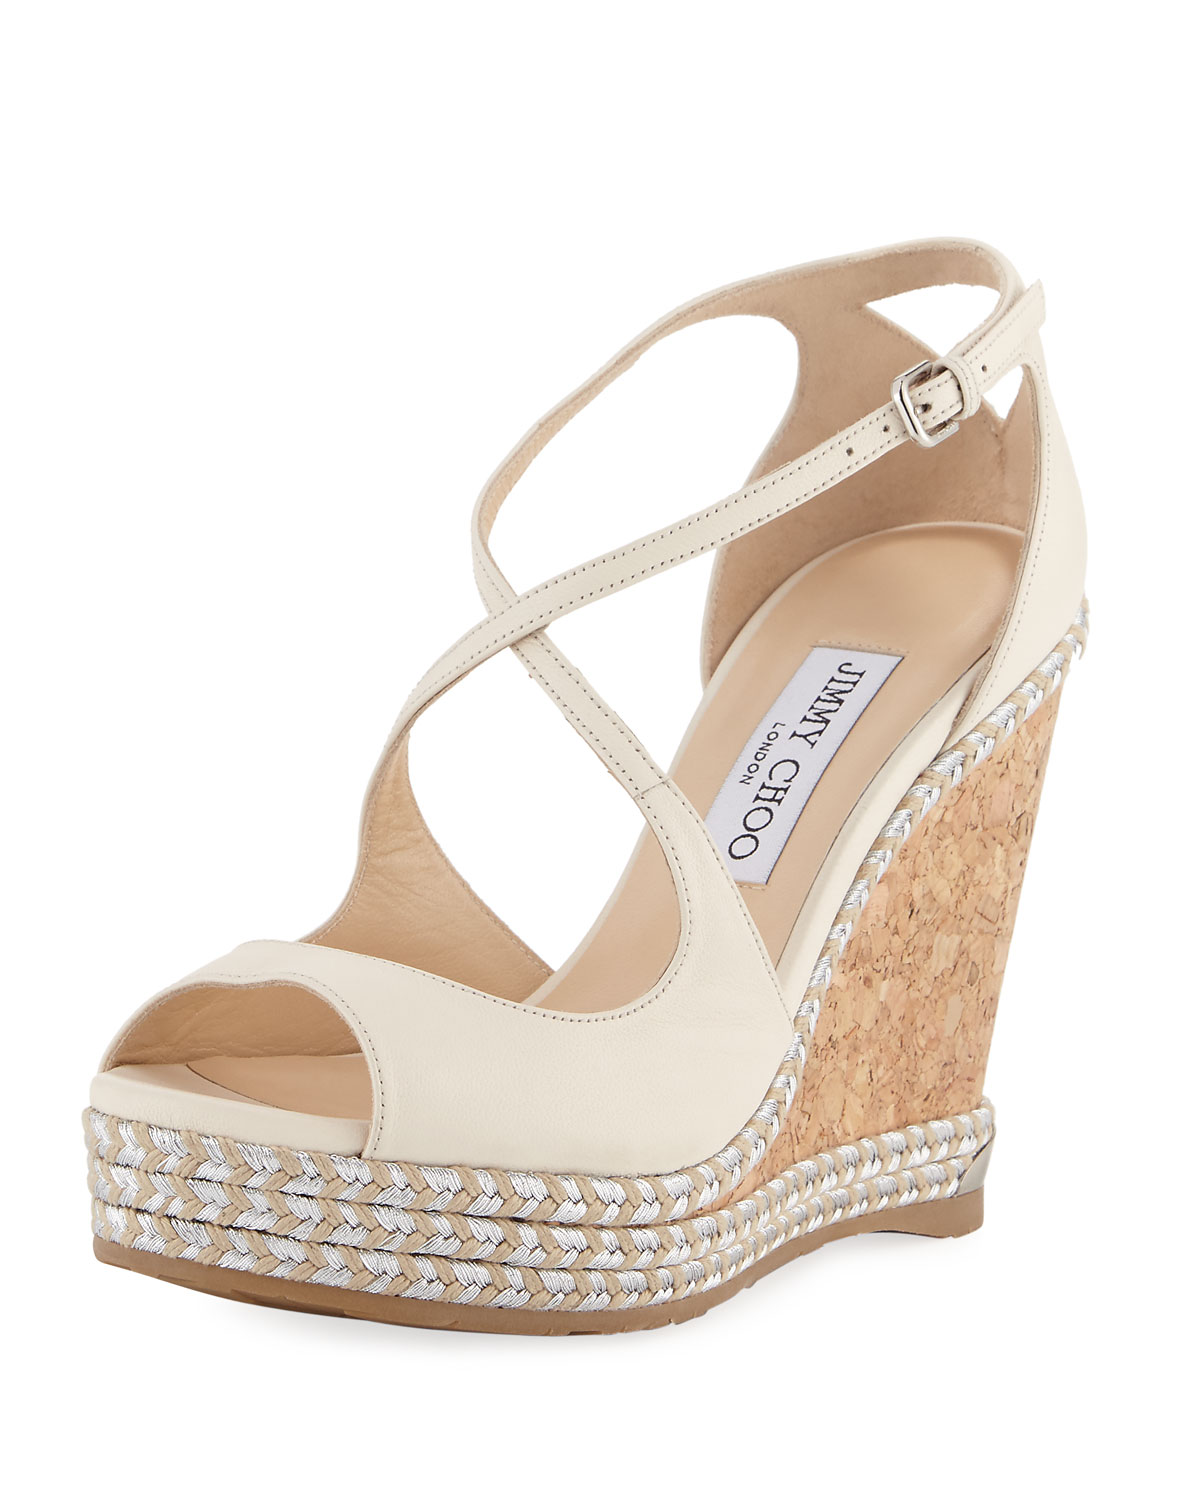 CUSP Wedges : Wedge Pumps & Espadrille Wedge Sandals at Neiman Marcus